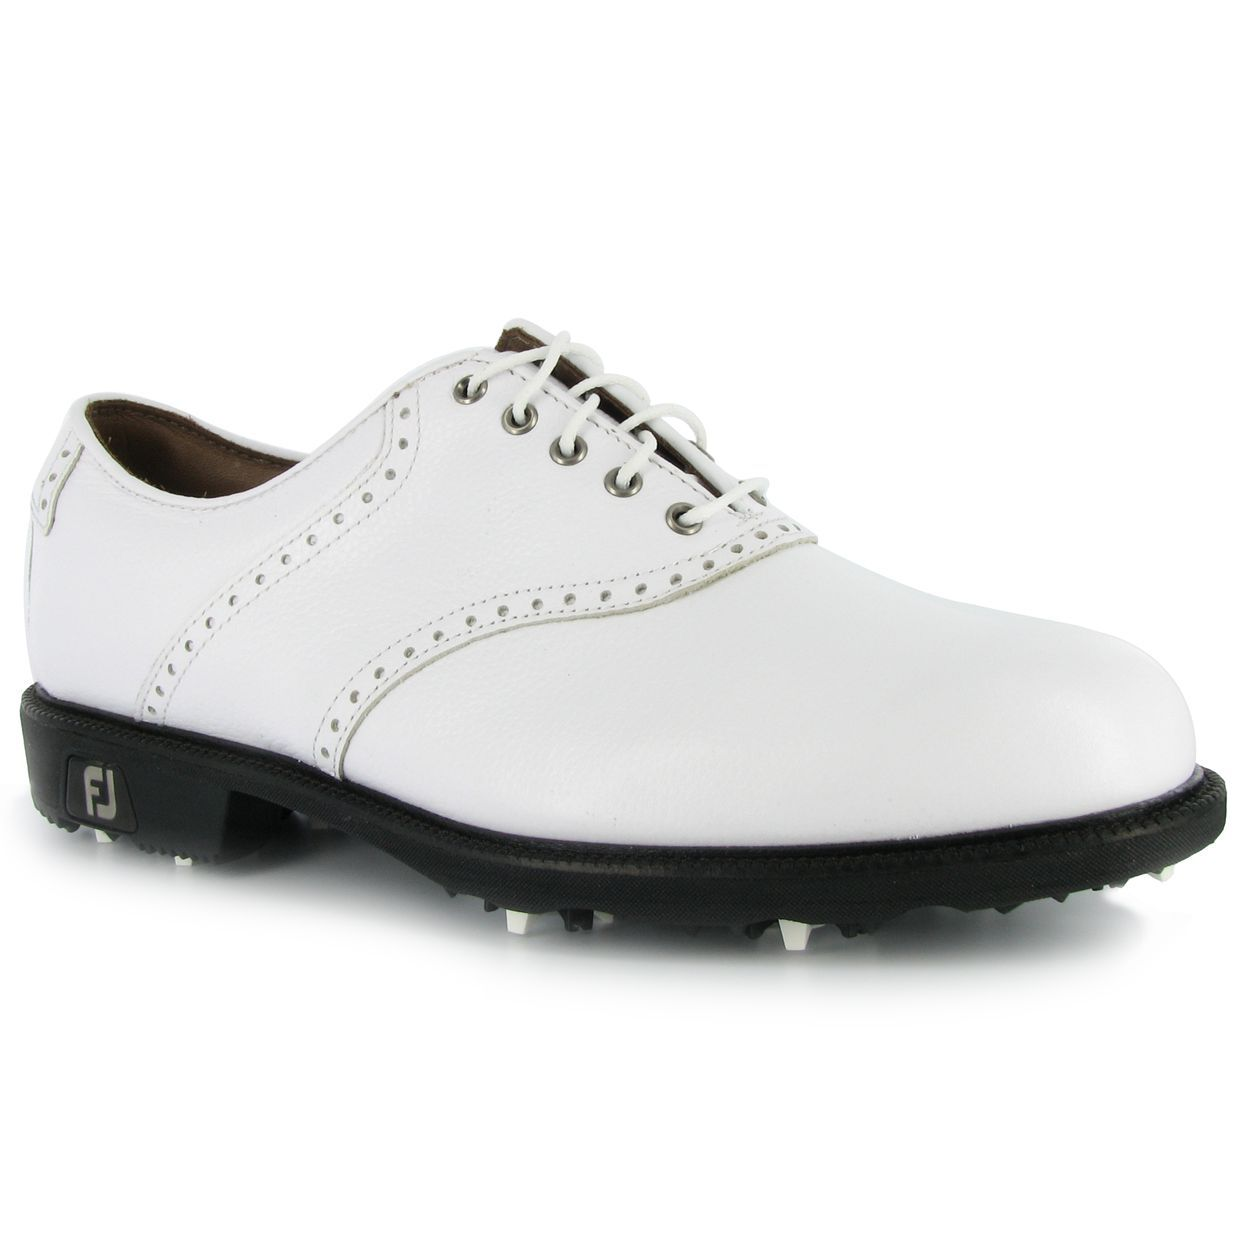 FootJoy Icon Golf Shoes---Classics...the best for Pine Valley